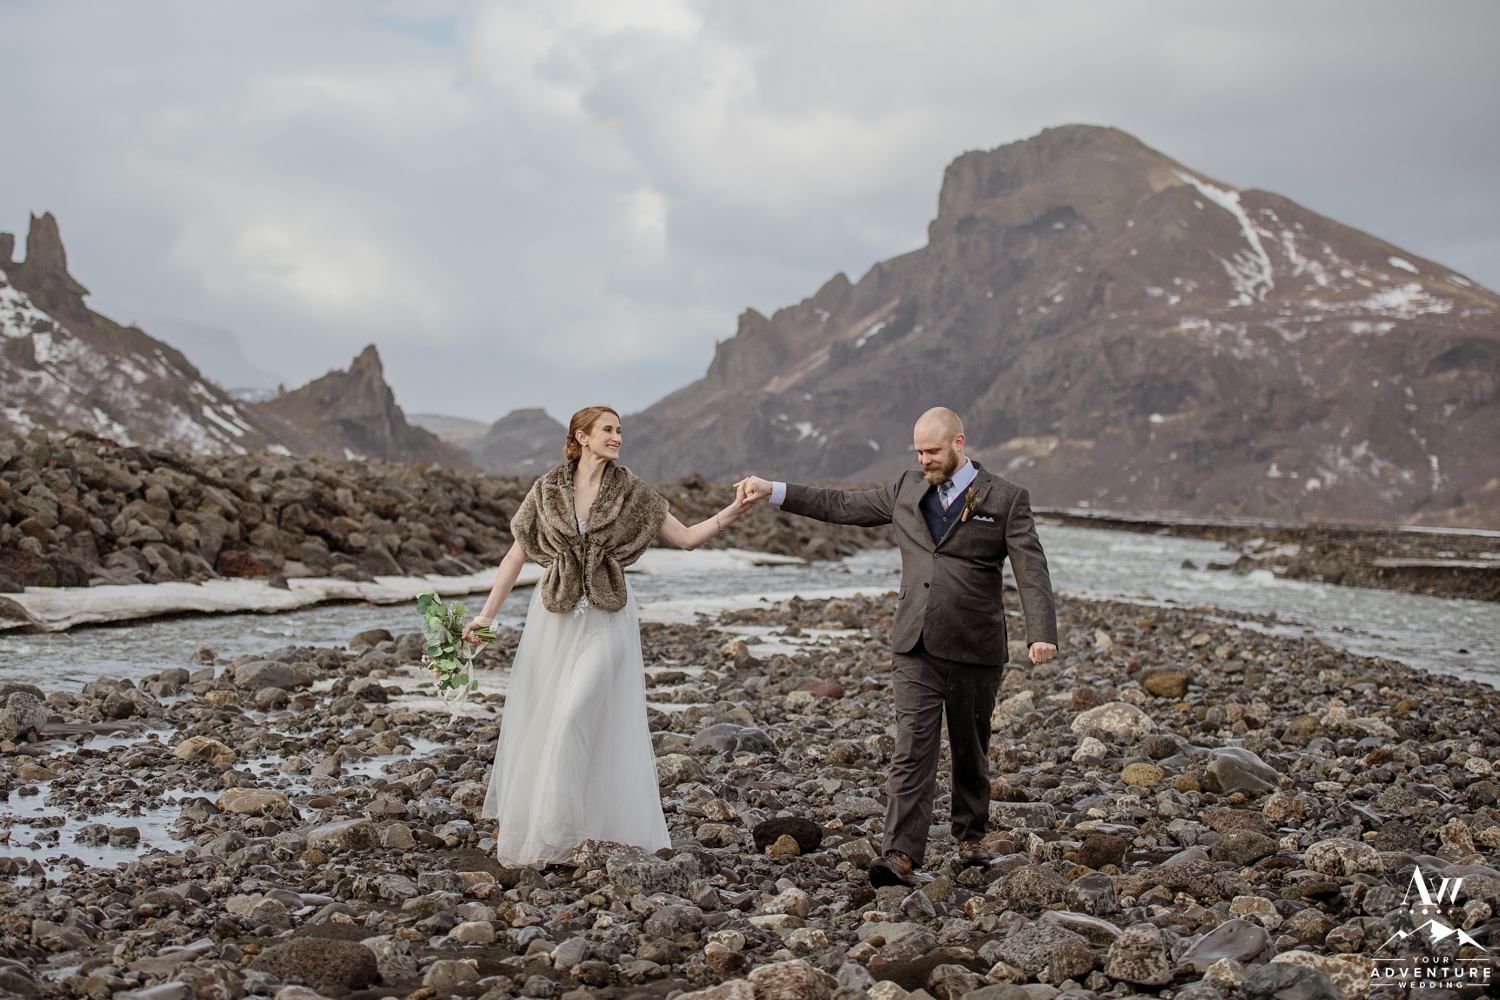 Couple dancing during Iceland adventure wedding